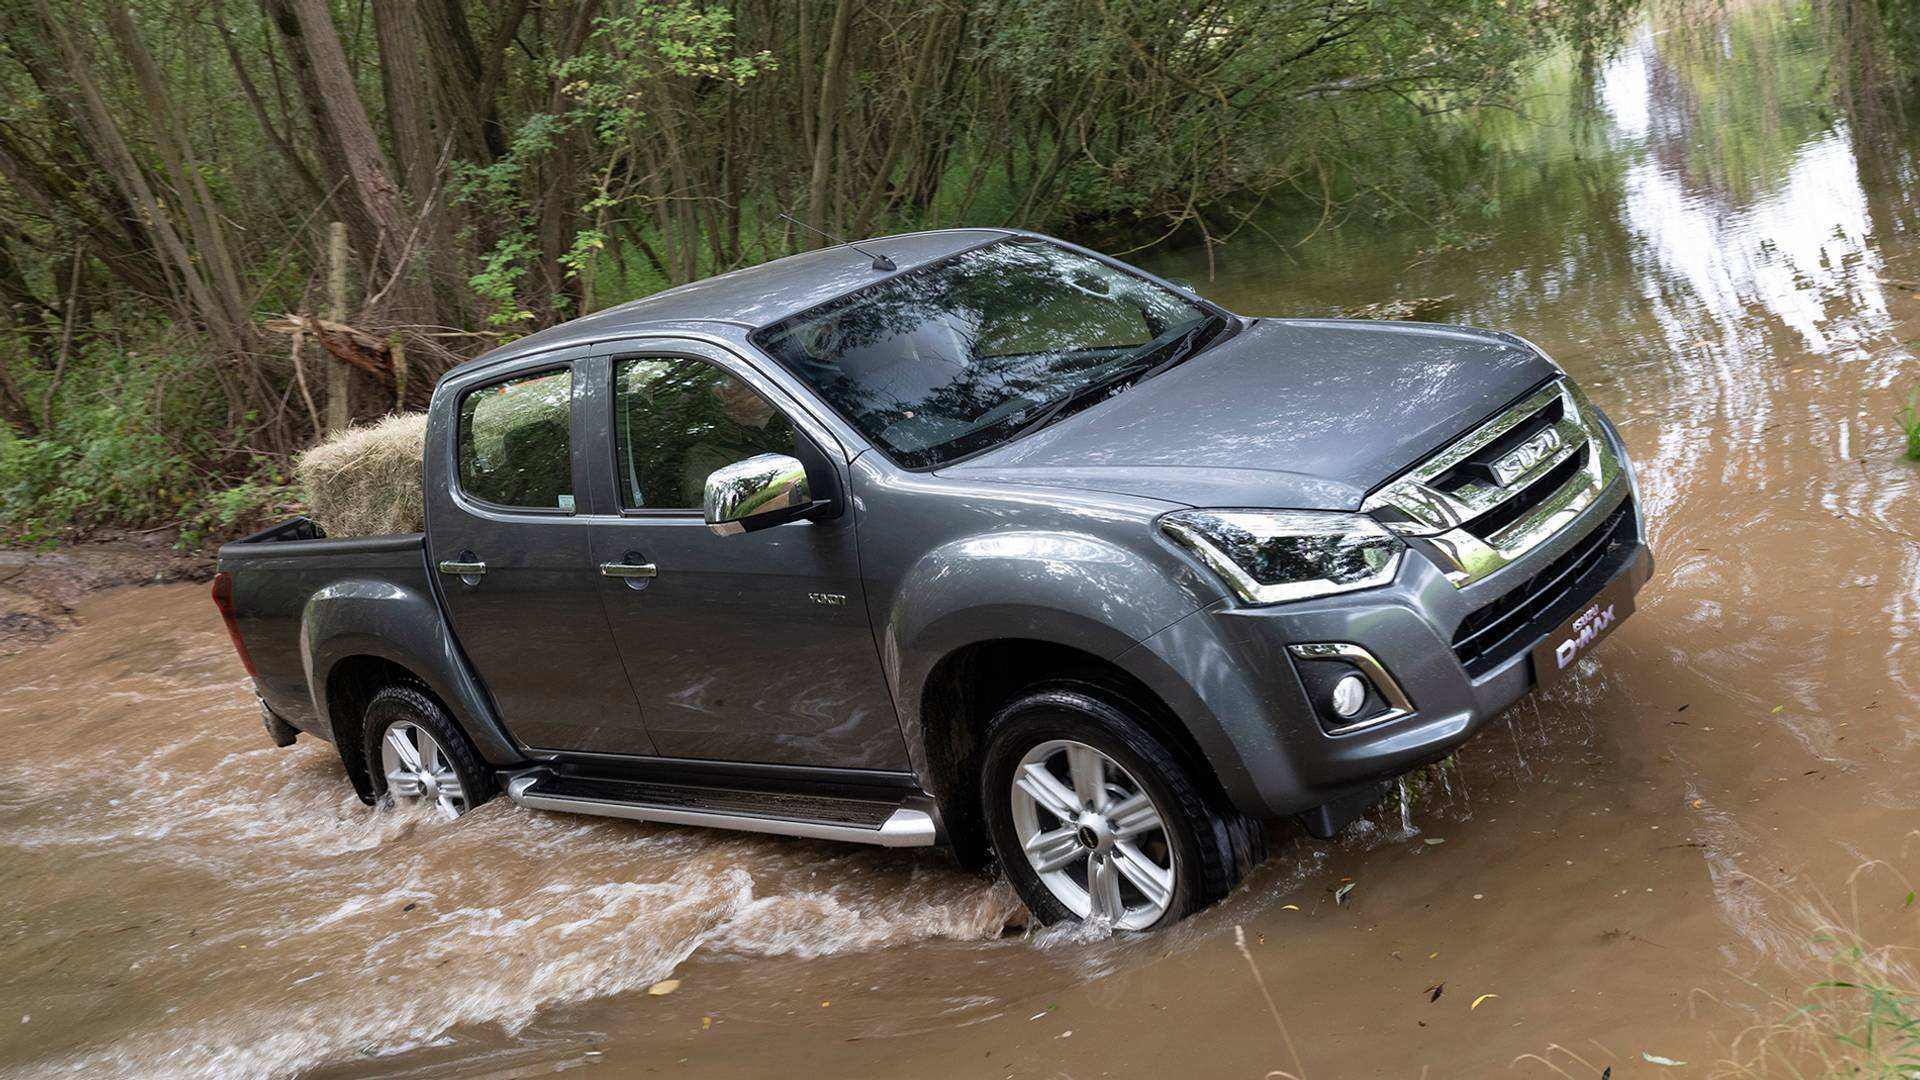 14 New 2019 Isuzu D Max History with 2019 Isuzu D Max